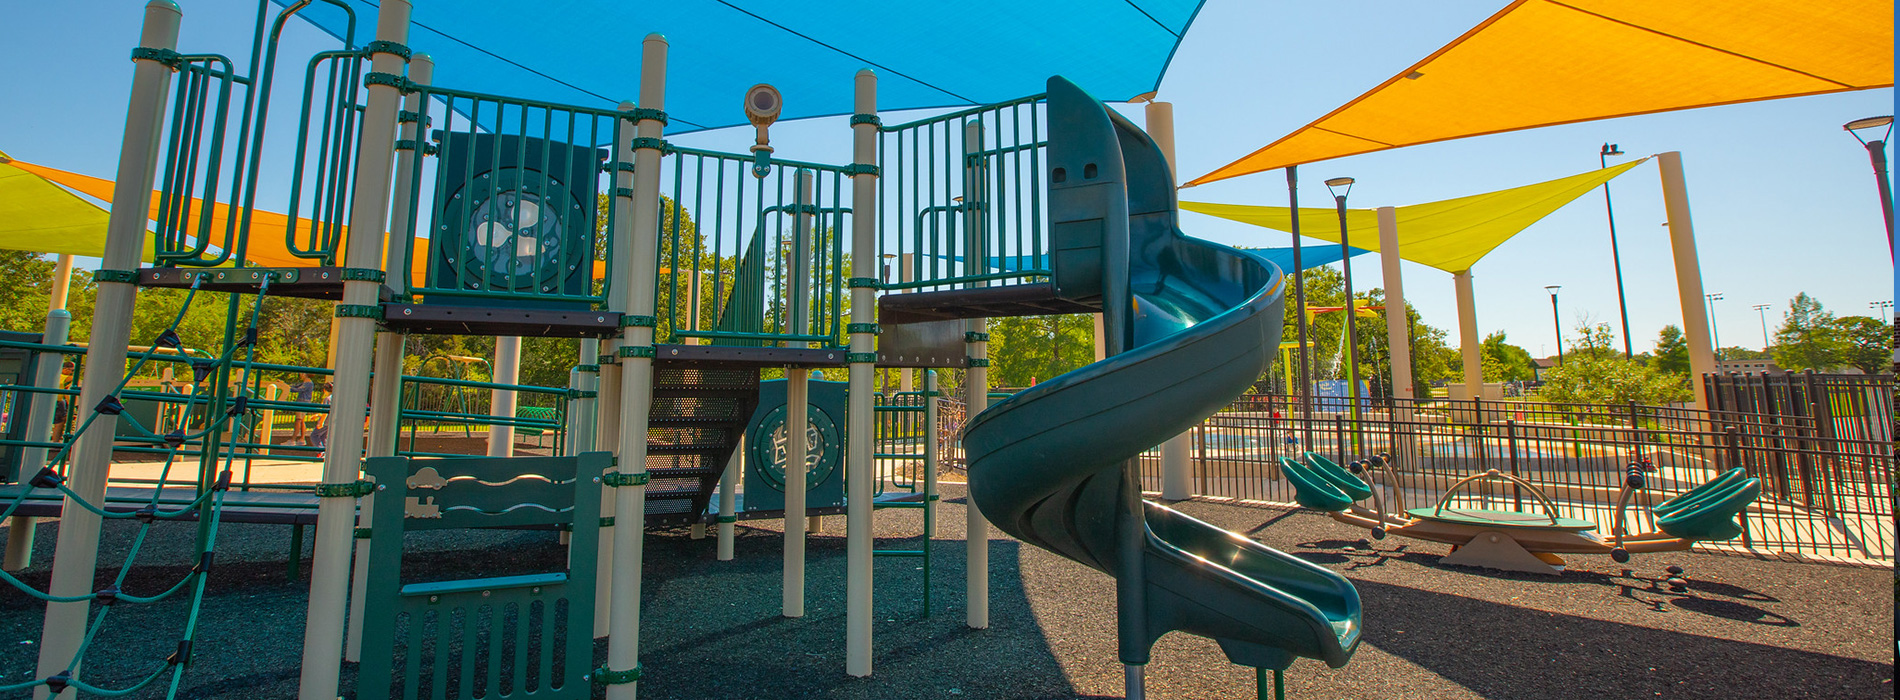 Fun for All Playground at Central Park in College Station